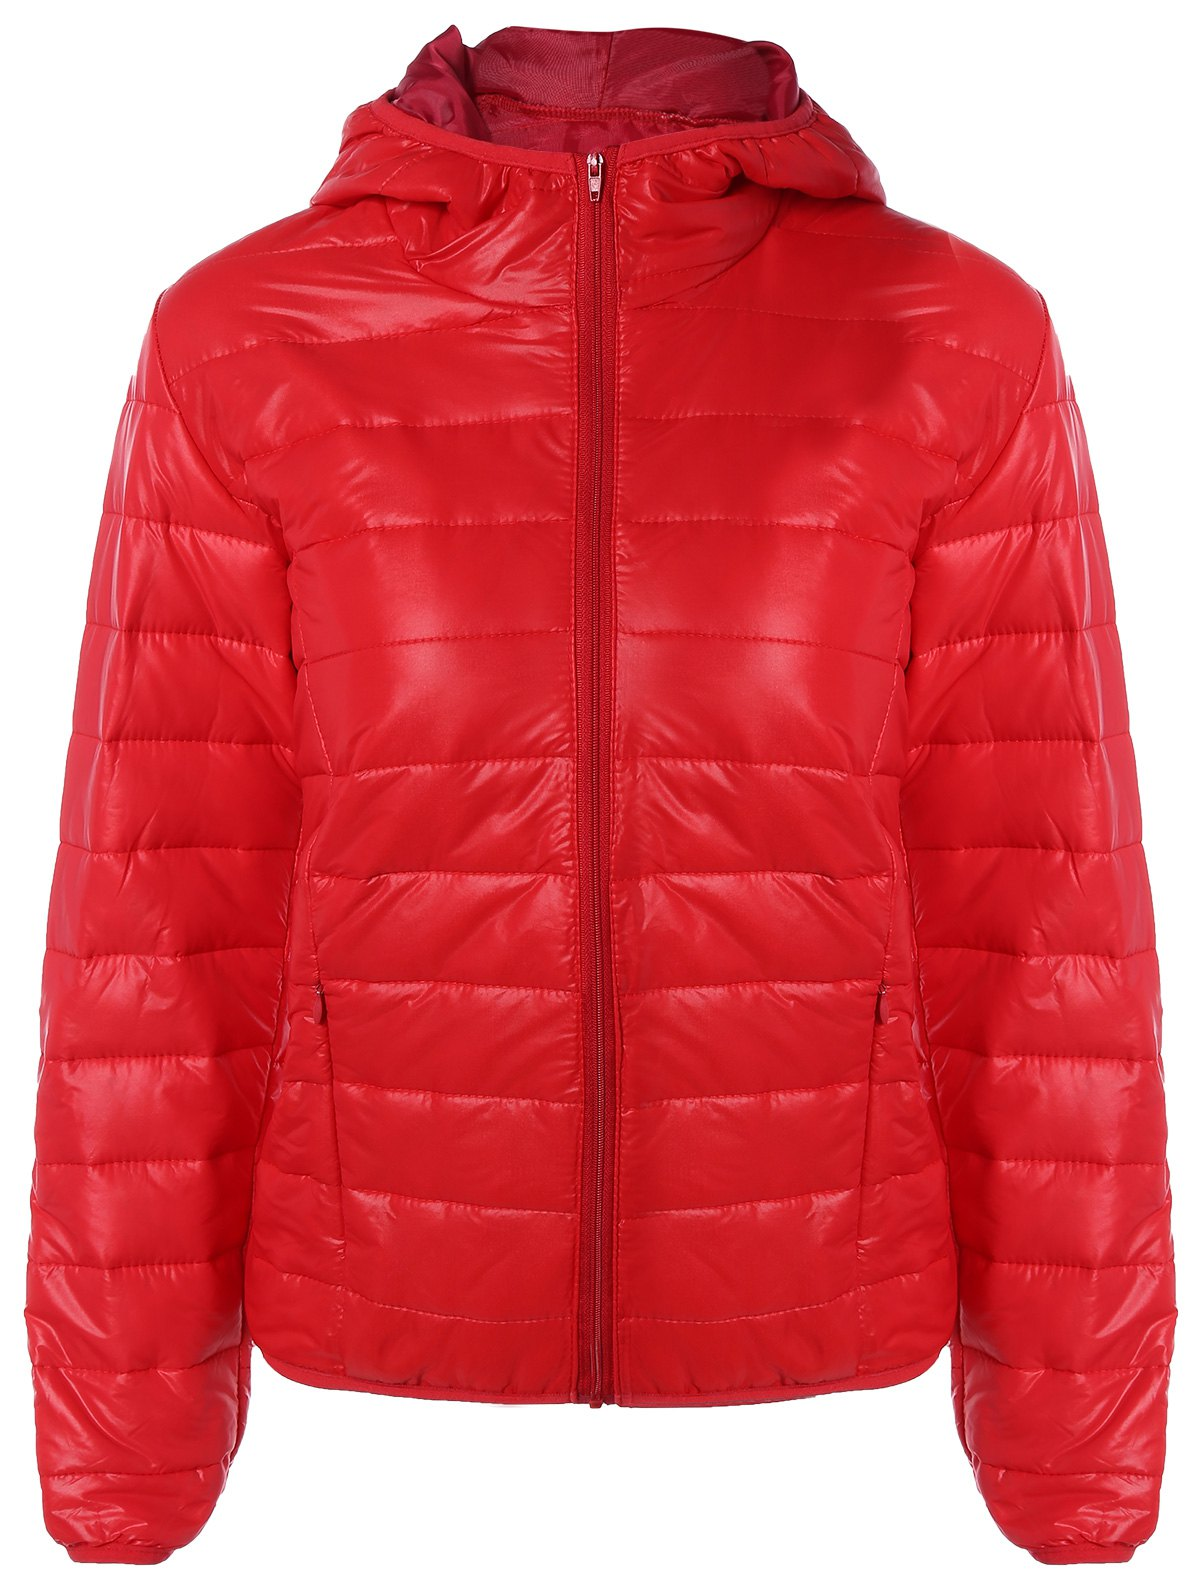 Fancy Topstitching Hooded Quilted Winter Jacket